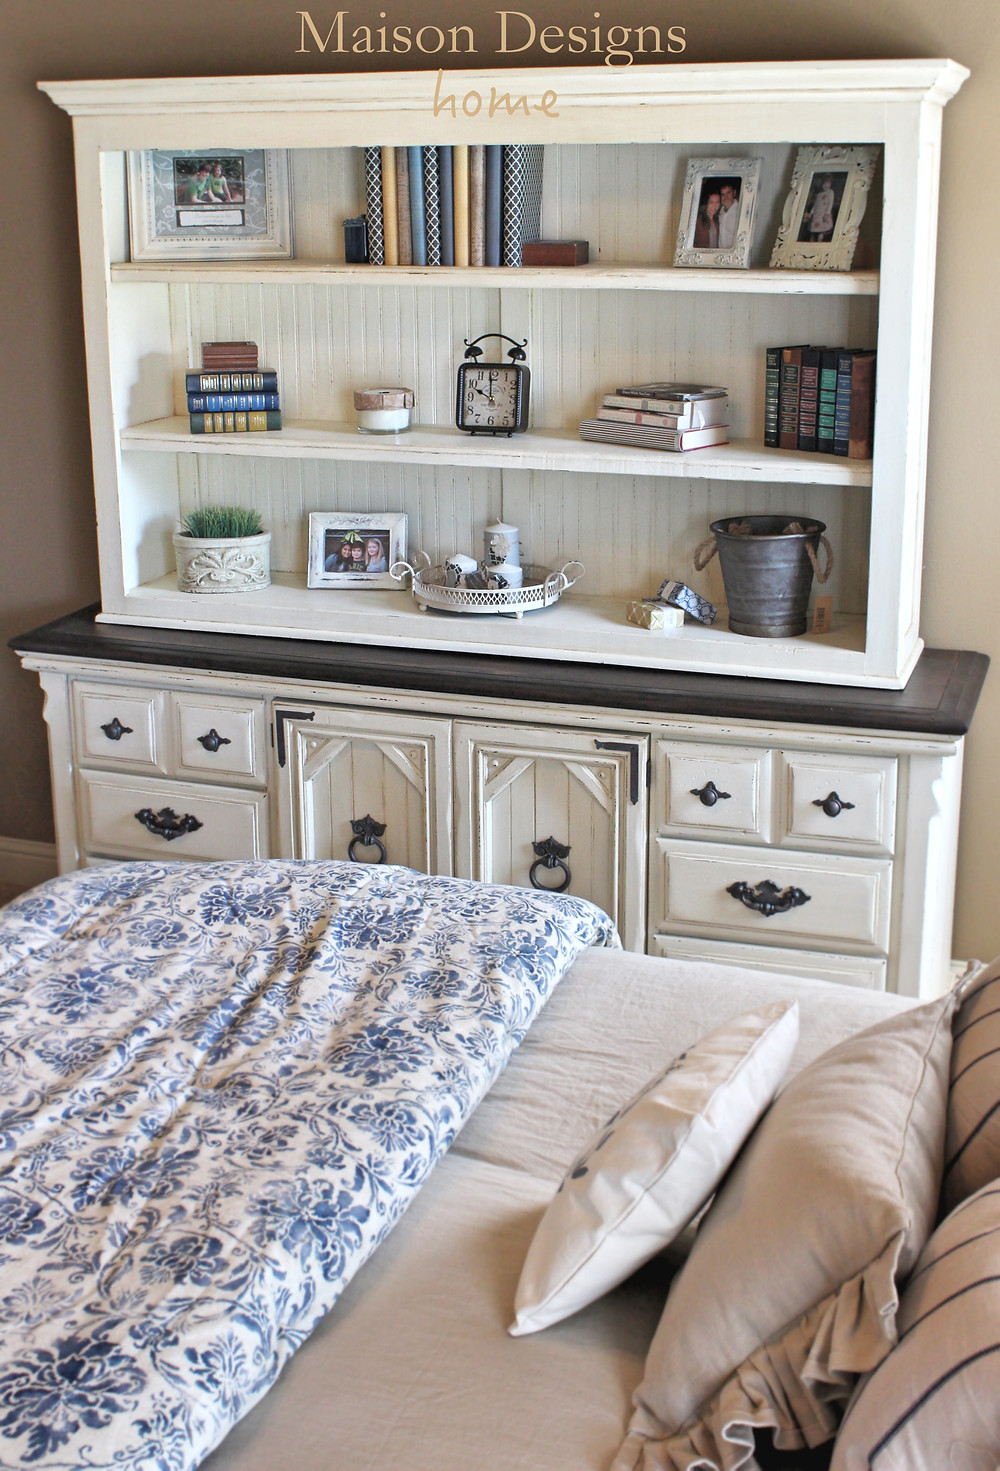 hutch bed side pdr.jpg